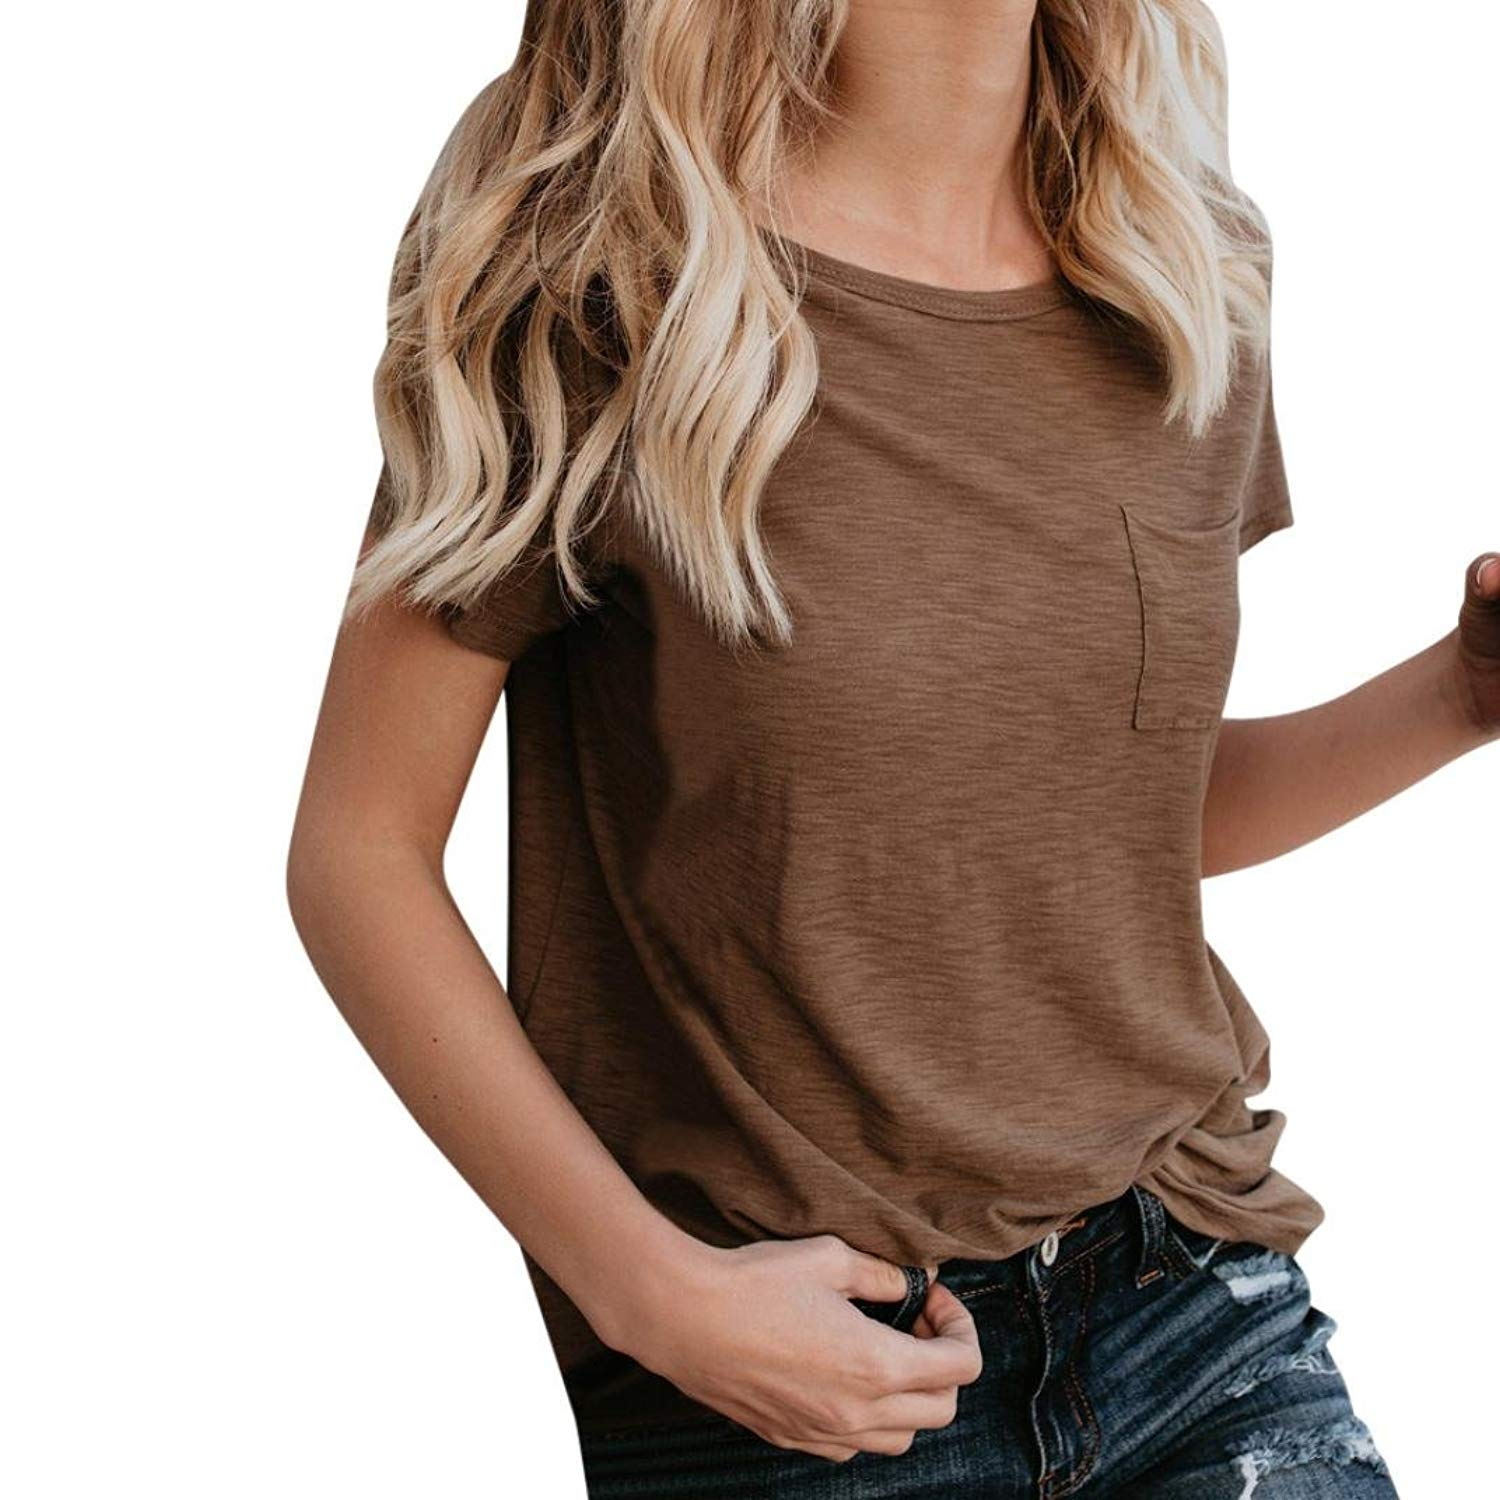 660b295403 Get Quotations · Tootu Women's Short Sleeve High Low Loose T Shirt Tee Tops  Loose Pure Hole Pocket Crop